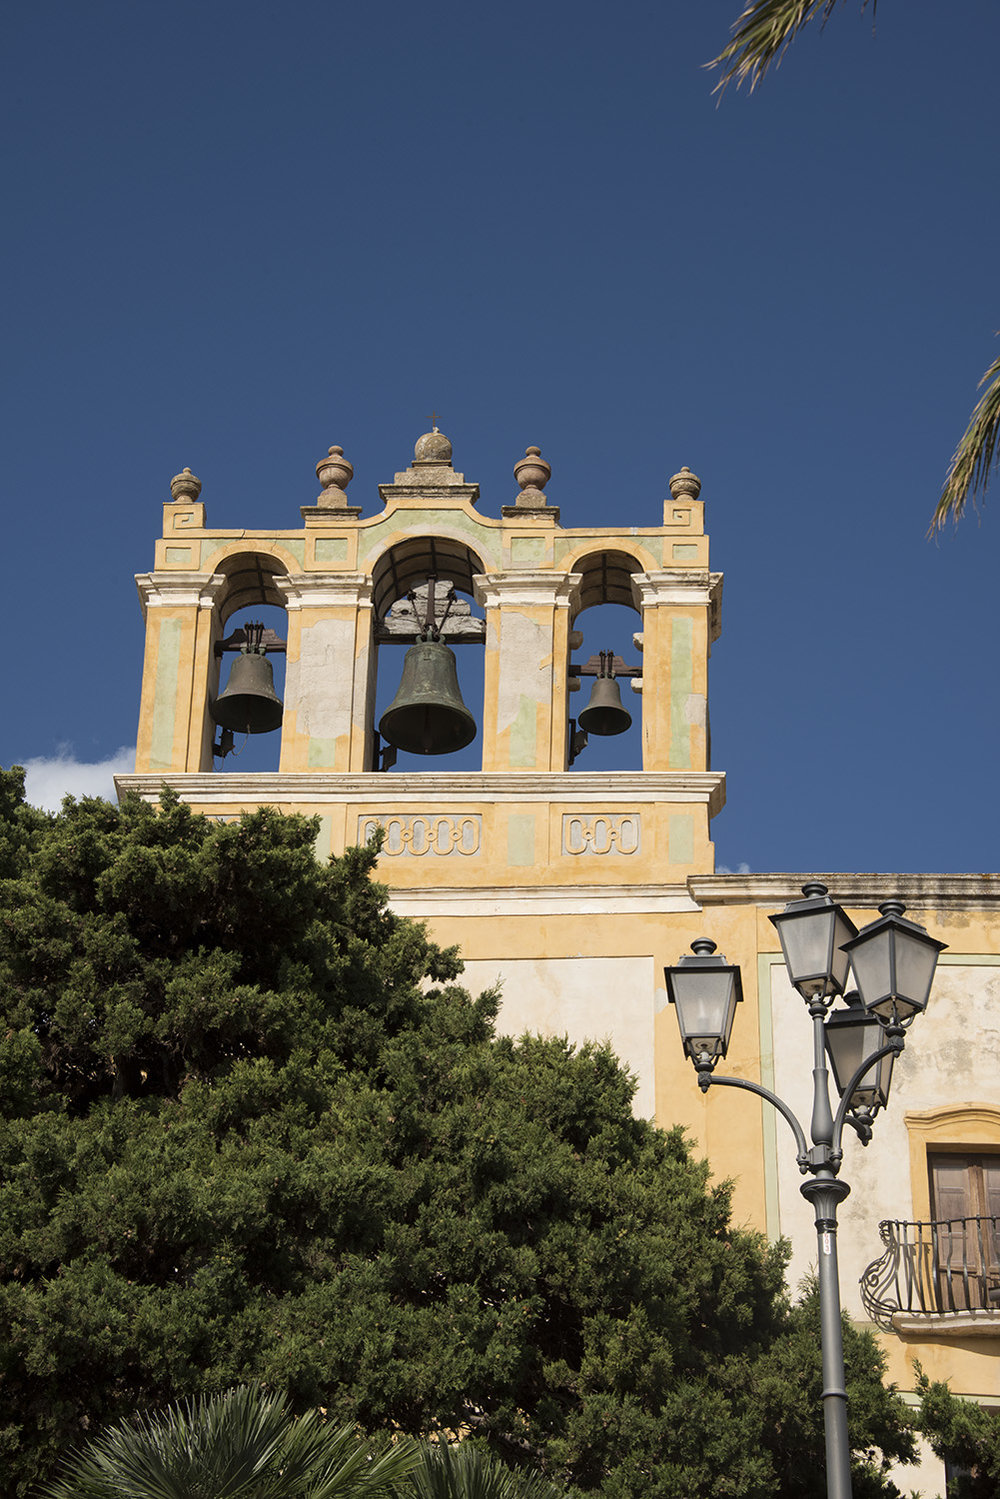 View of the bell tower of the Sanctuary of Maria Santissima of Custonaci, Custonaci, Sicily